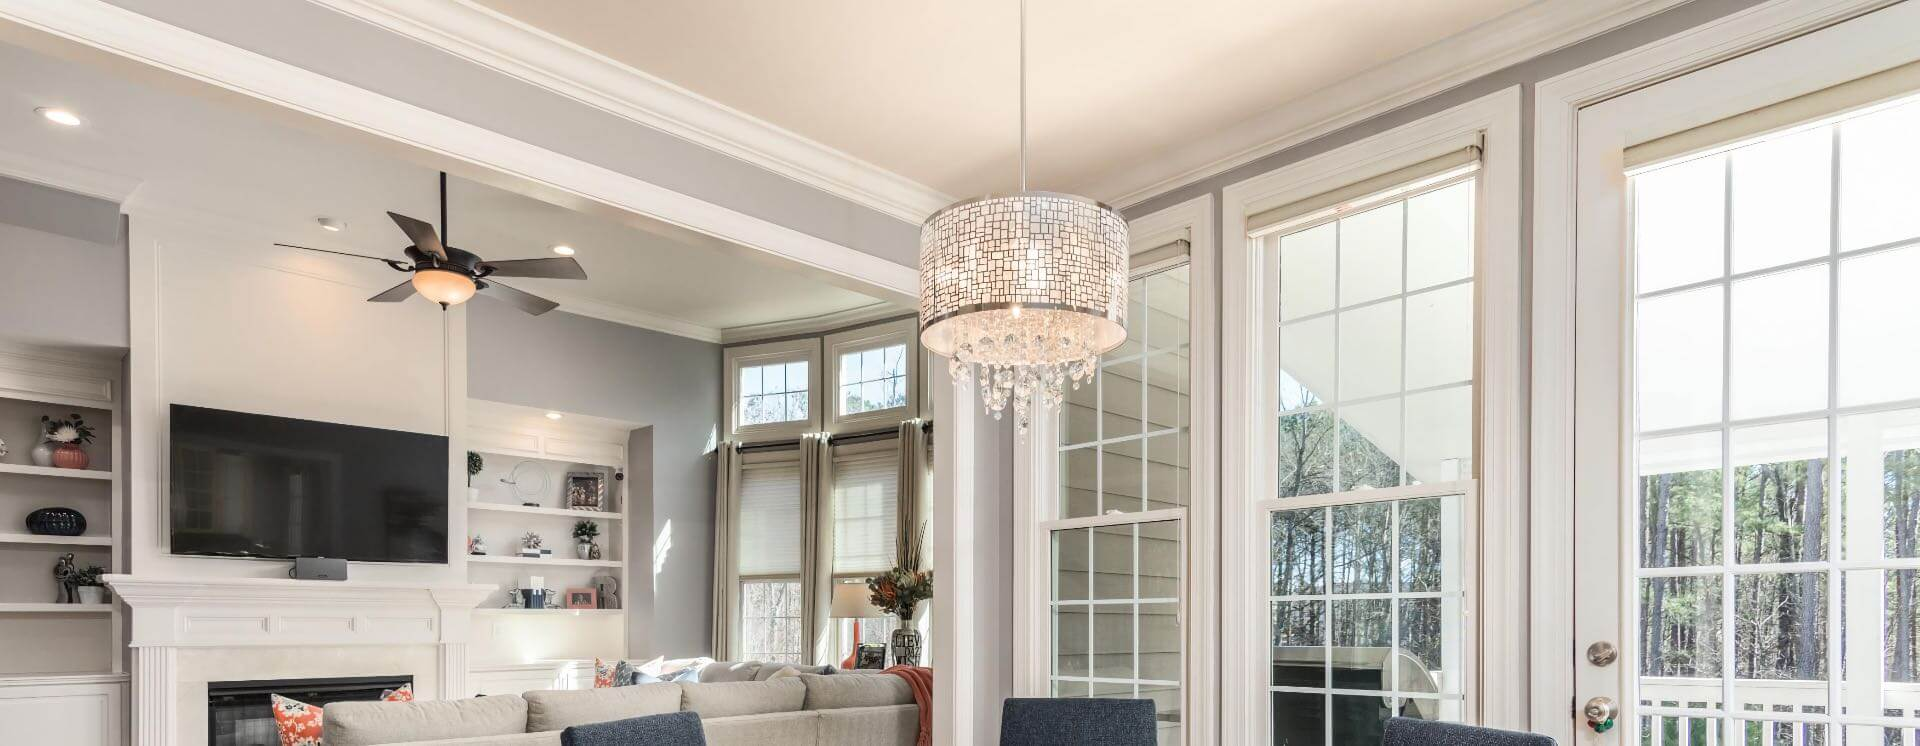 Interior of an elegant house with a small chandelier.